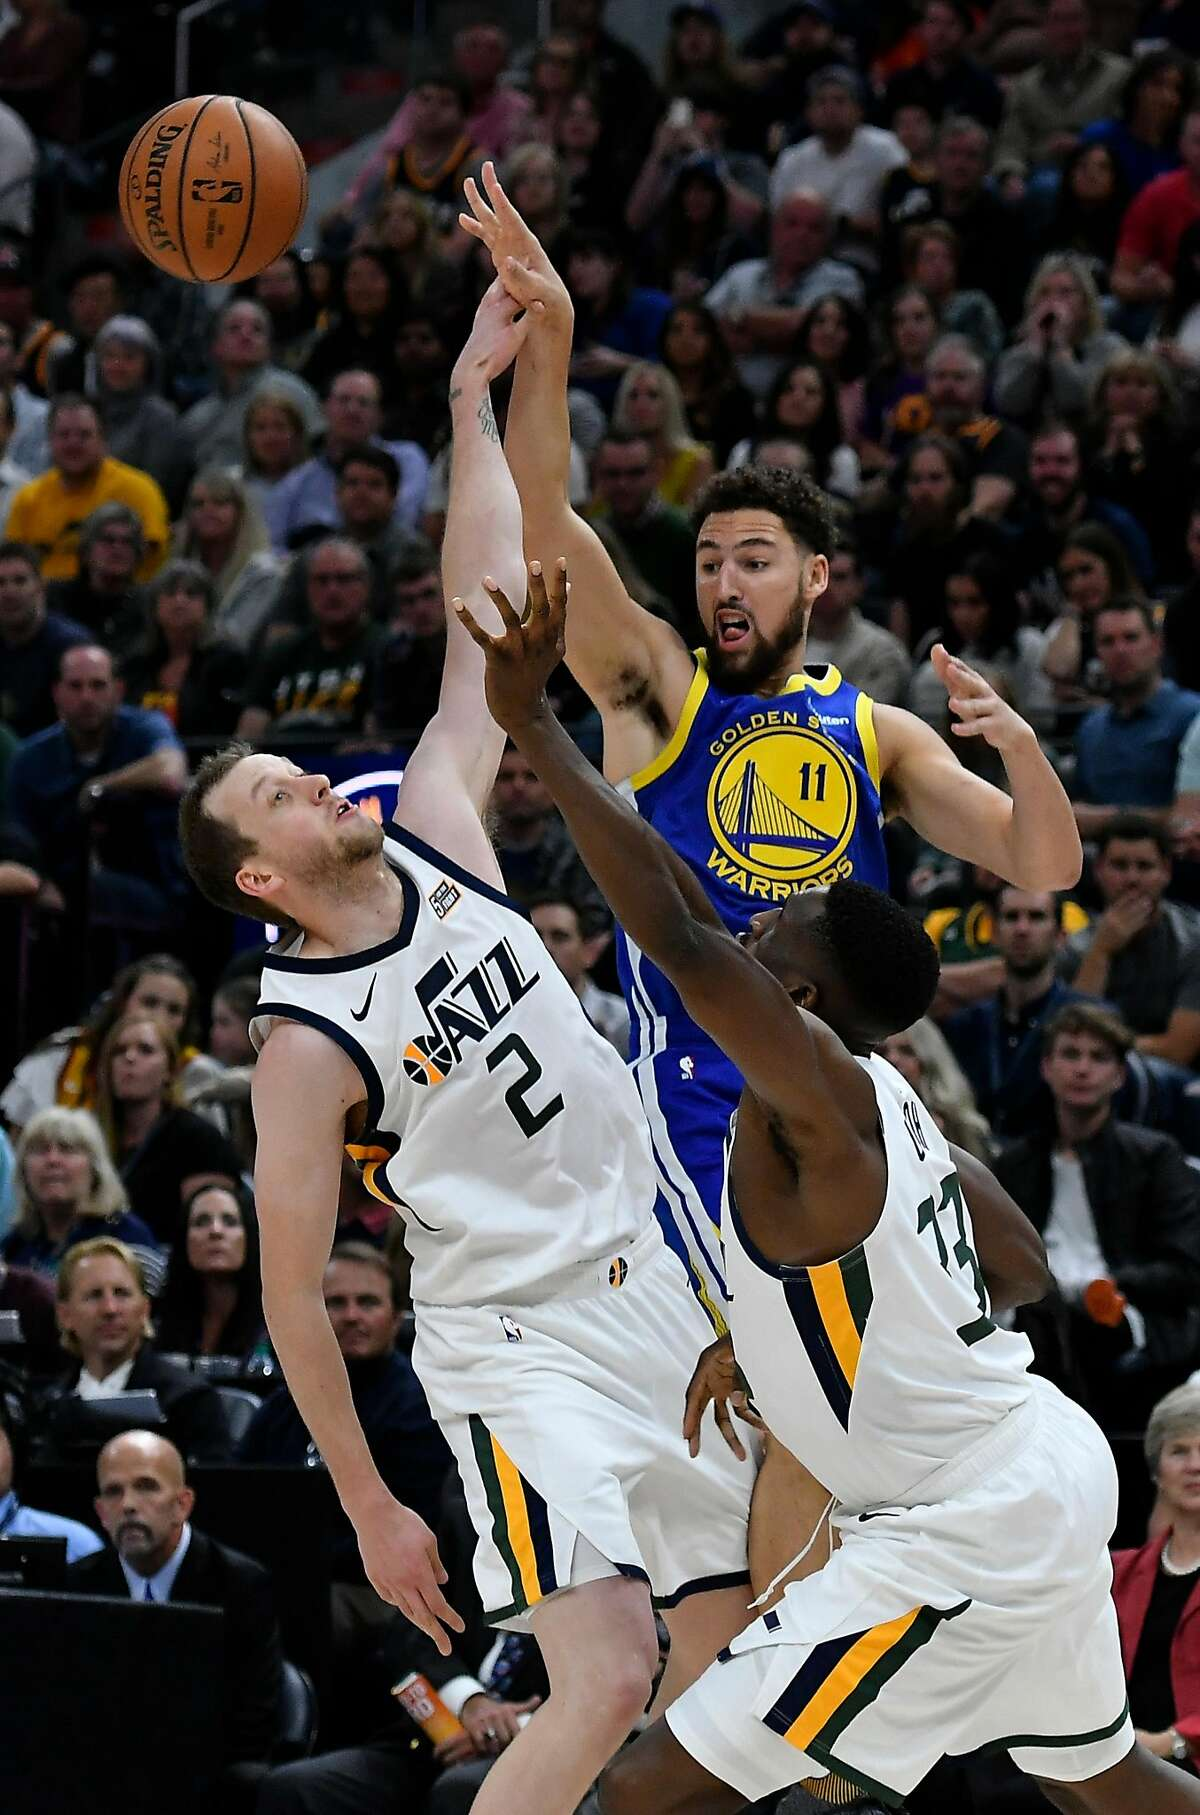 SALT LAKE CITY, UT - OCTOBER 19: Klay Thompson #11 of the Golden State Warriors passes over Joe Ingles #2 of the Utah Jazz and teammate Ekpe Udoh #33 in the first half of a NBA game at Vivint Smart Home Arena on October 19, 2018 in Salt Lake City, Utah. NOTE TO USER: User expressly acknowledges and agrees that, by downloading and or using this photograph, User is consenting to the terms and conditions of the Getty Images License Agreement. (Photo by Gene Sweeney Jr./Getty Images)